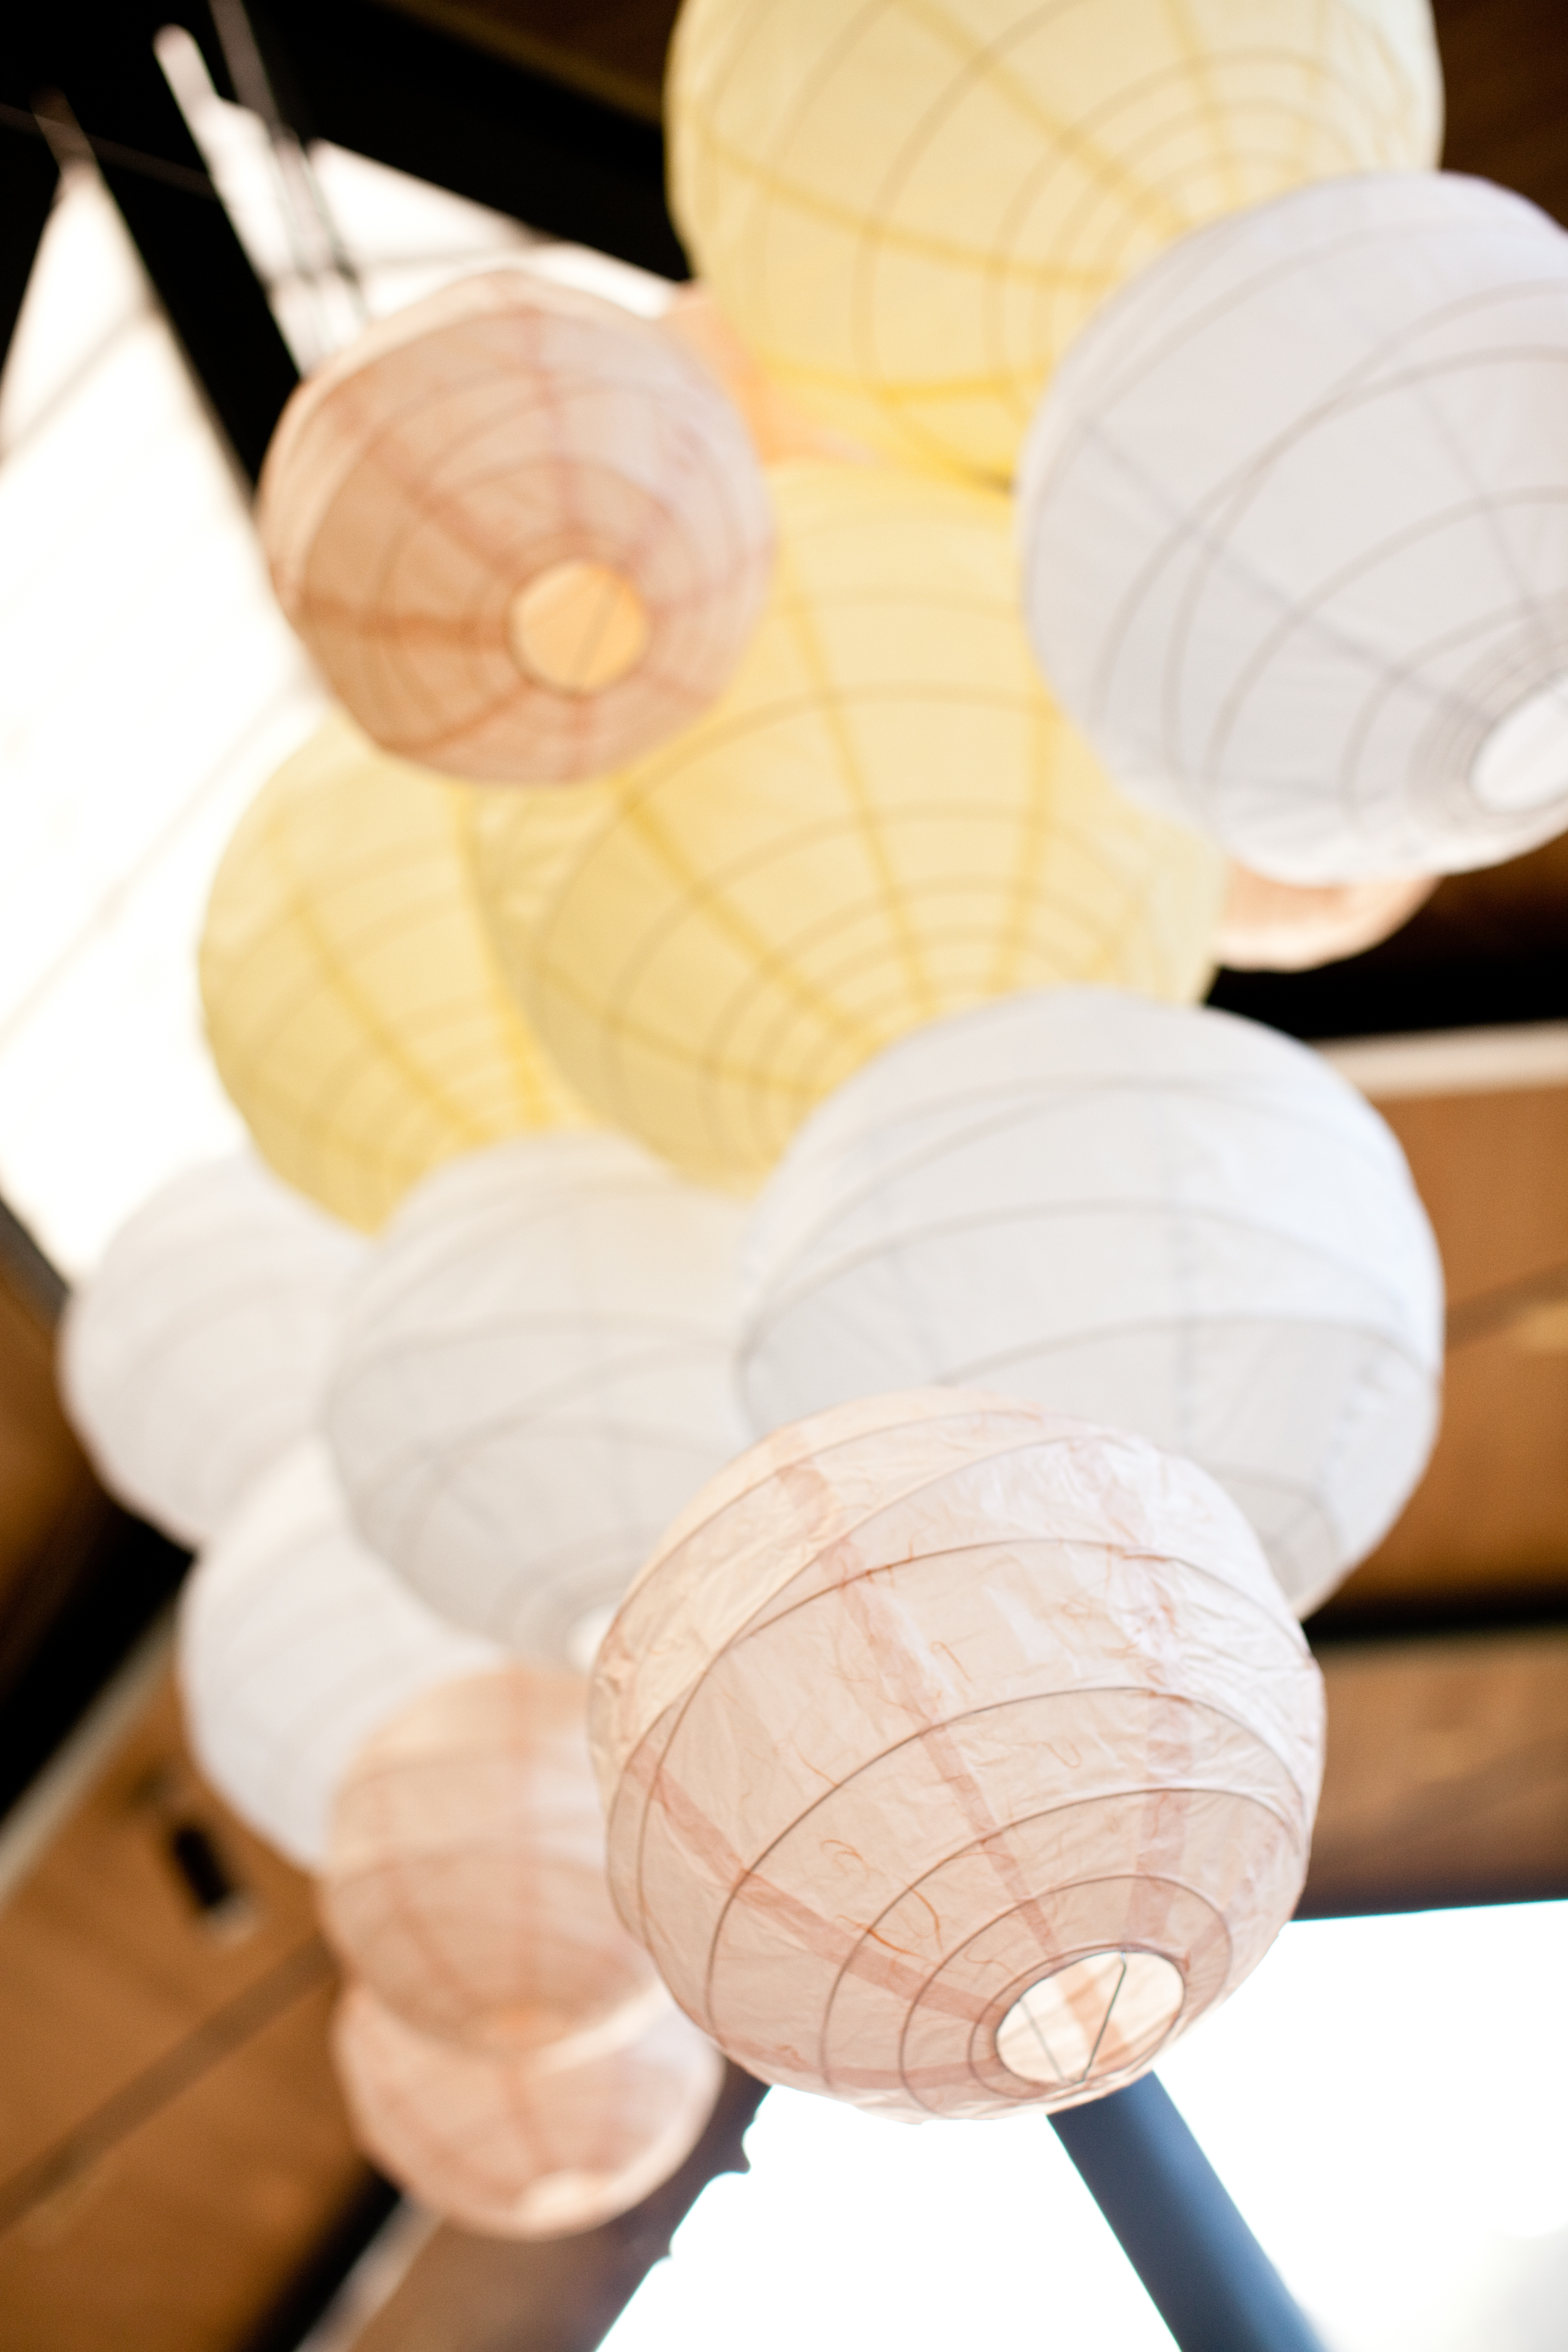 Flowers & Decor, Real Weddings, Wedding Style, Lighting, Summer Weddings, West Coast Real Weddings, Garden Real Weddings, Summer Real Weddings, Garden Weddings, Summer Wedding Flowers & Decor, Paper lanterns